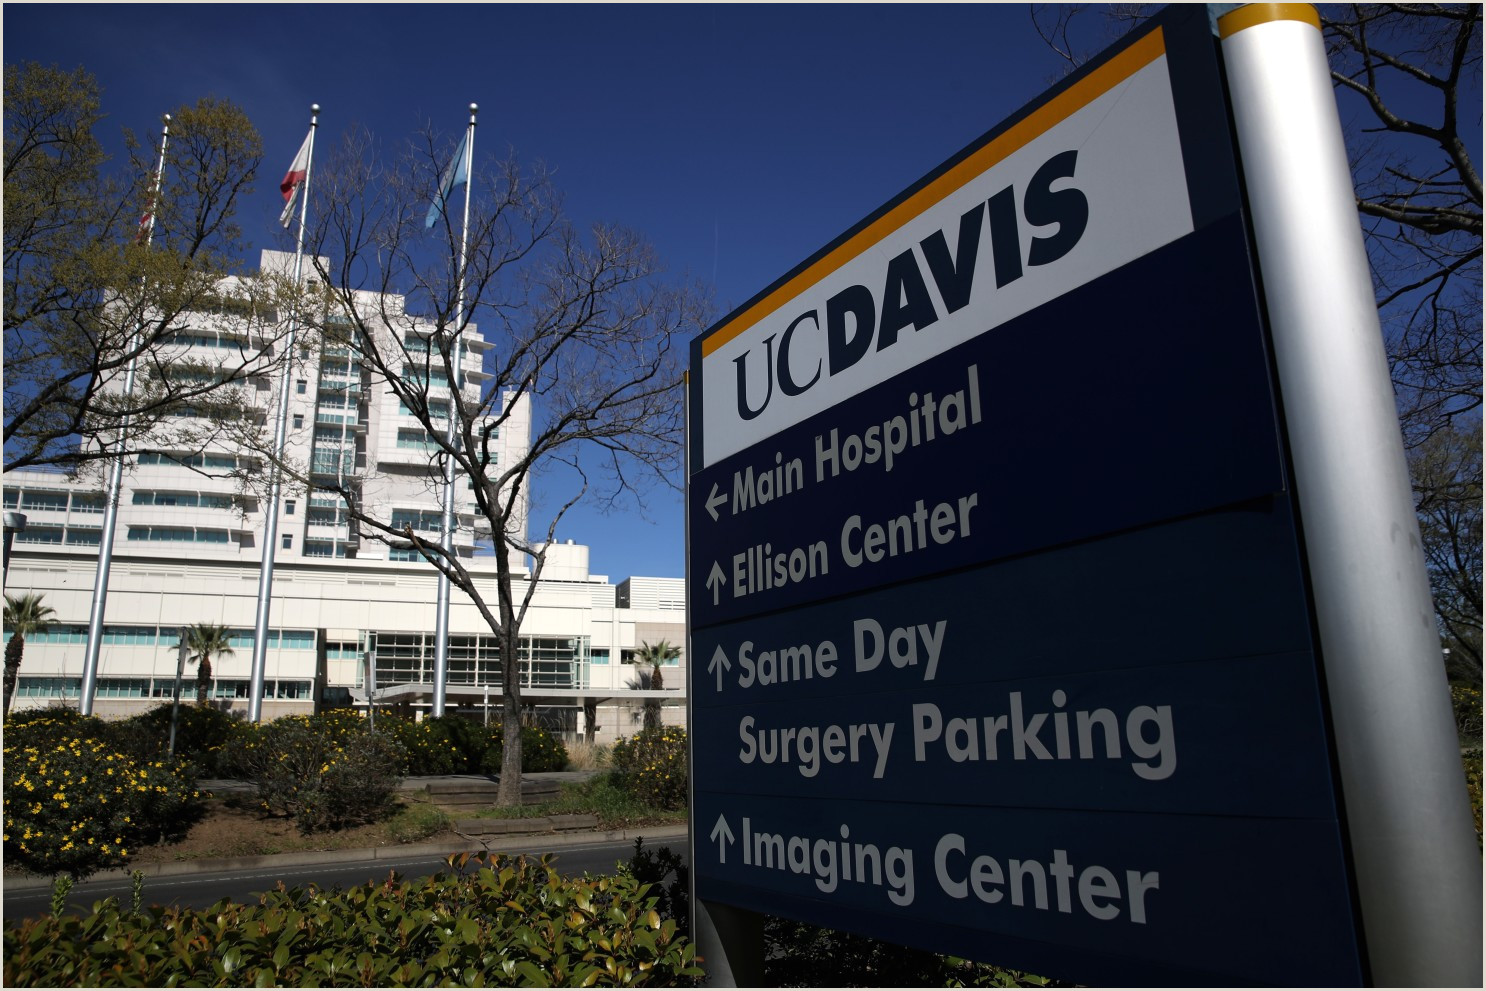 Vista Print Signs New Coronavirus Cases In California Spark Fears Of Wider